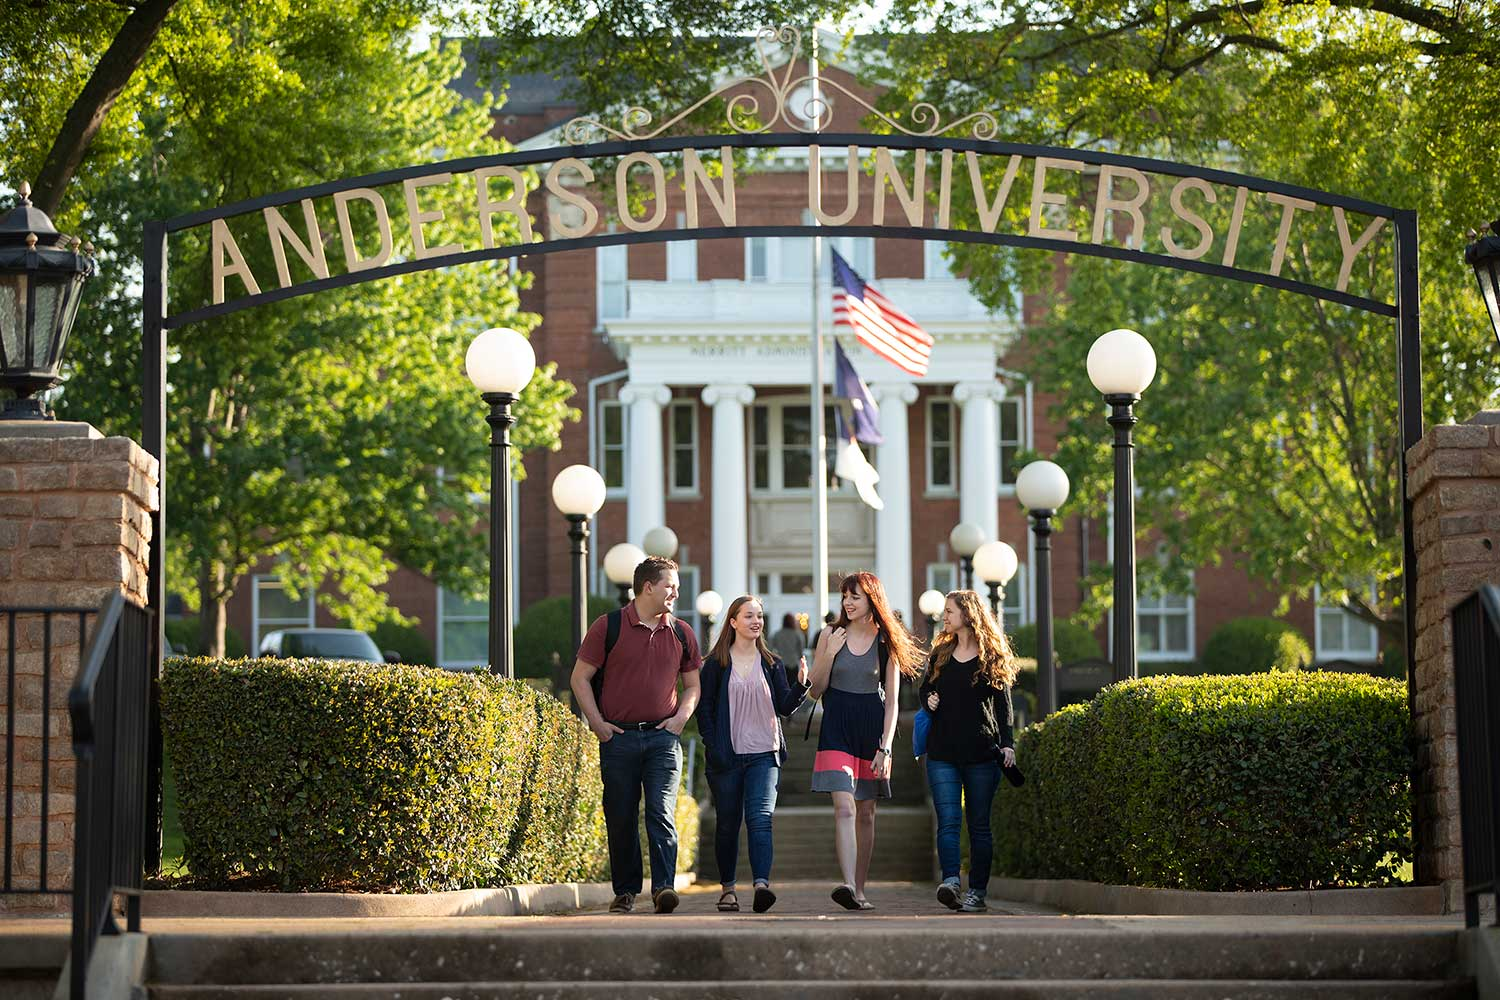 Anderson University arch